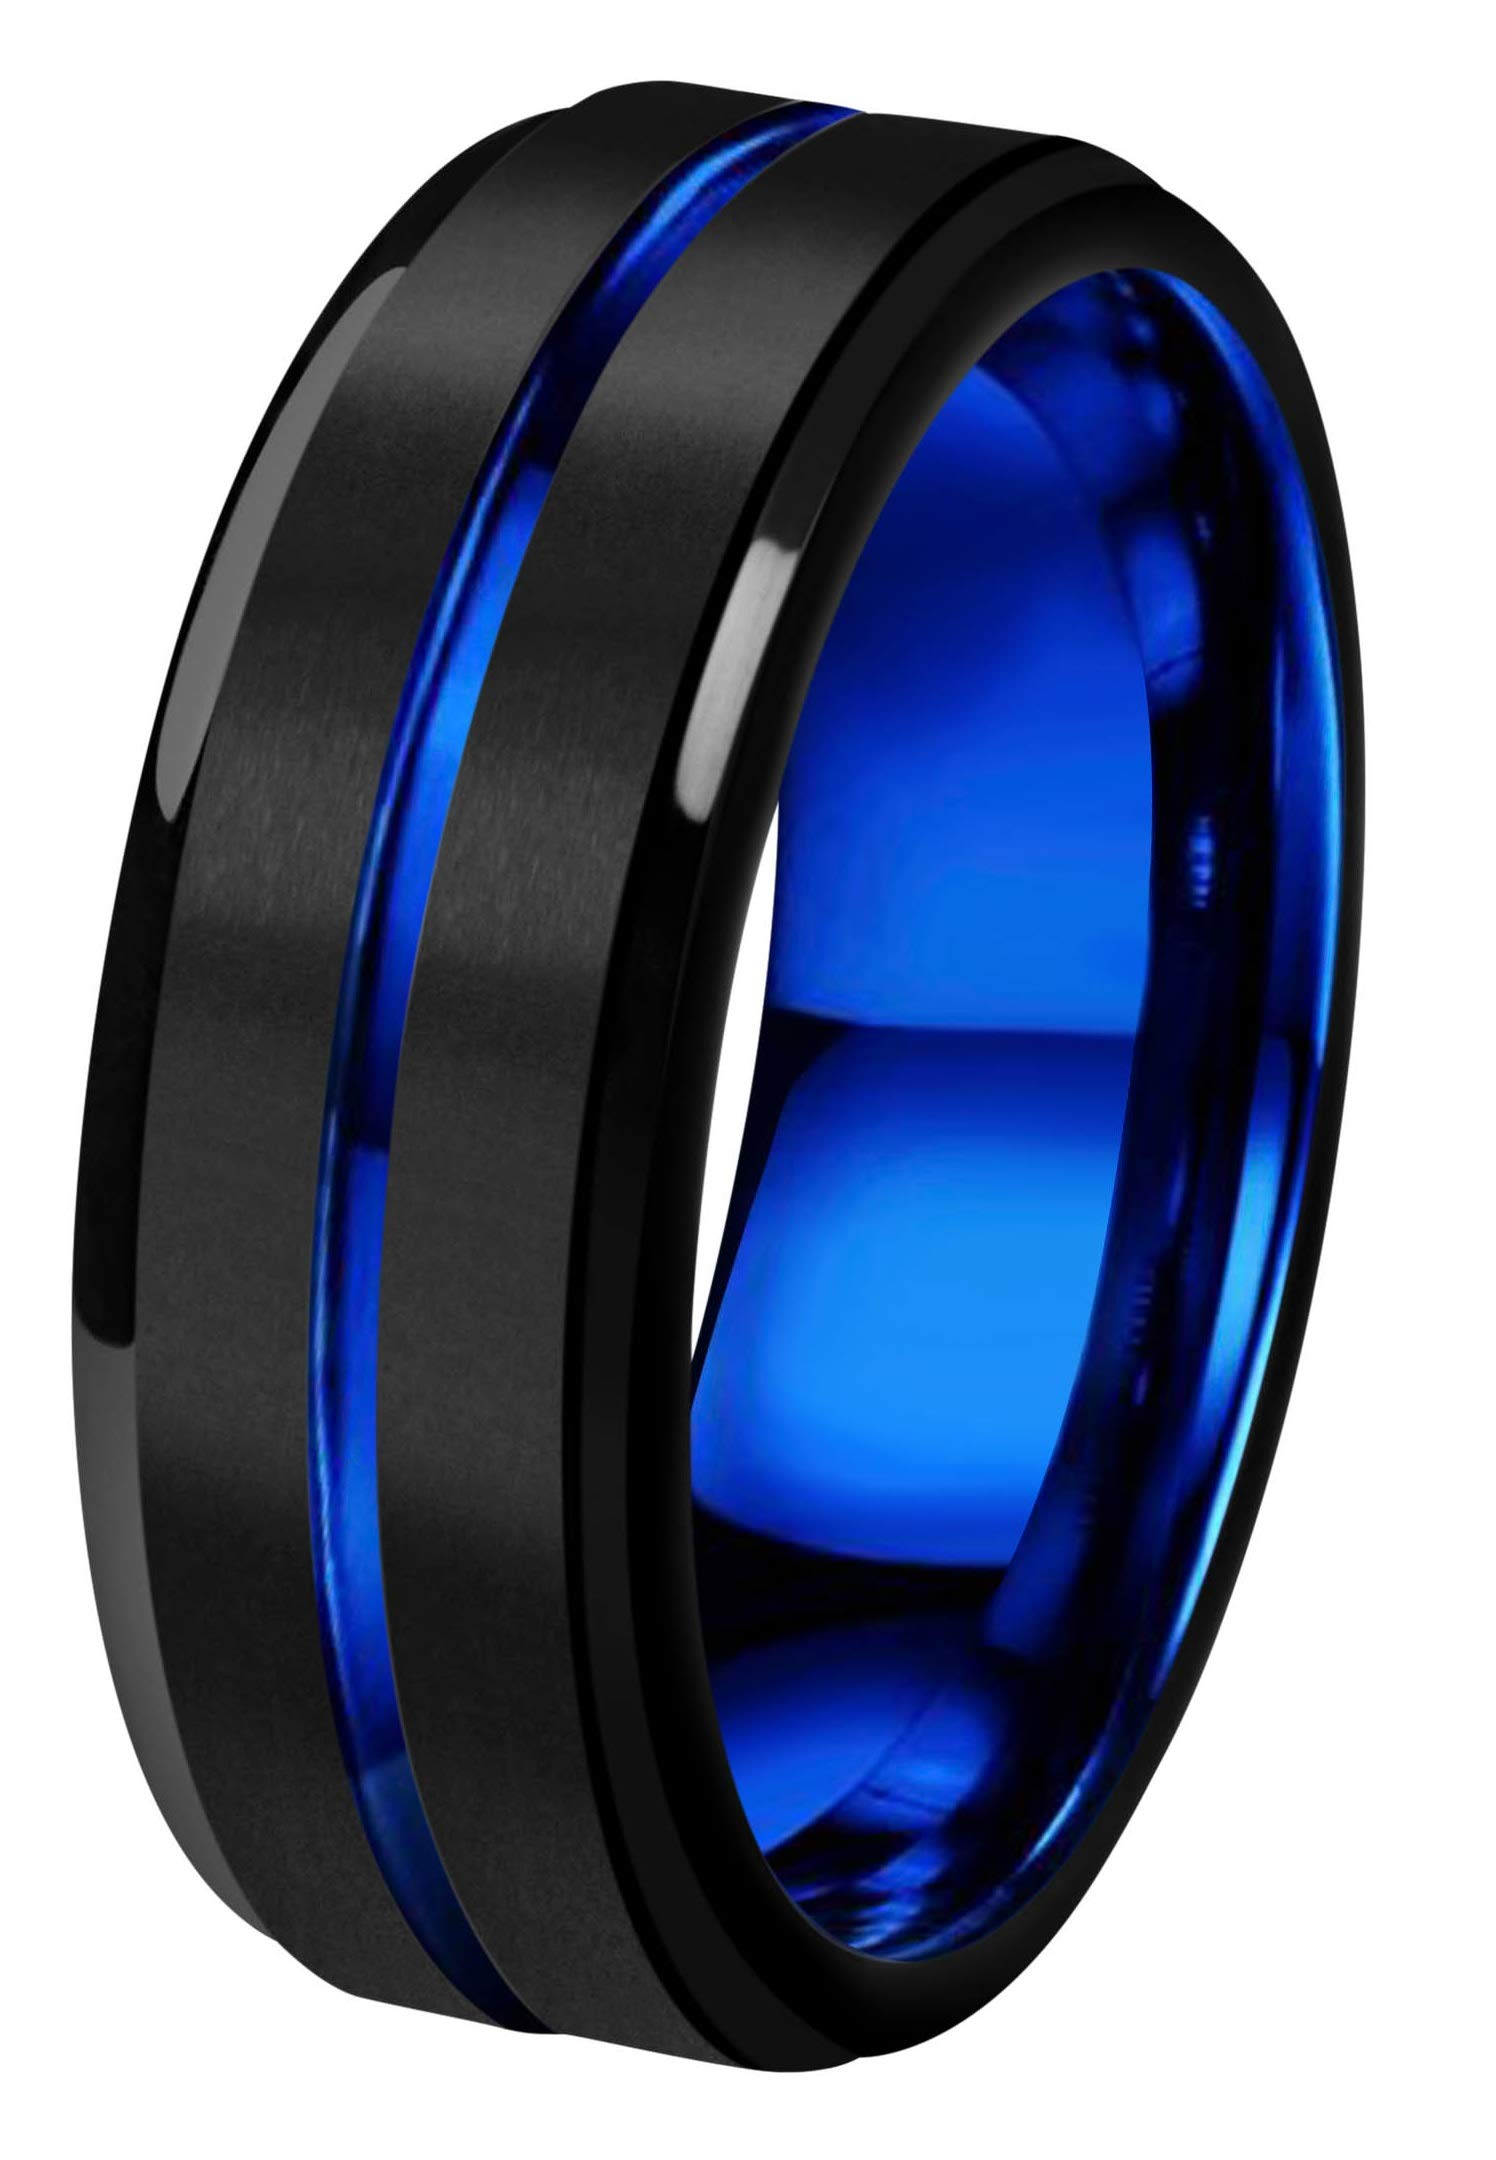 CROWNAL 8mm Blue Groove Black Matte Finish Tungsten Carbide Wedding Band Ring Step Down Engraved I Love You Size 5 to 17 (8mm,10) by CROWNAL (Image #2)